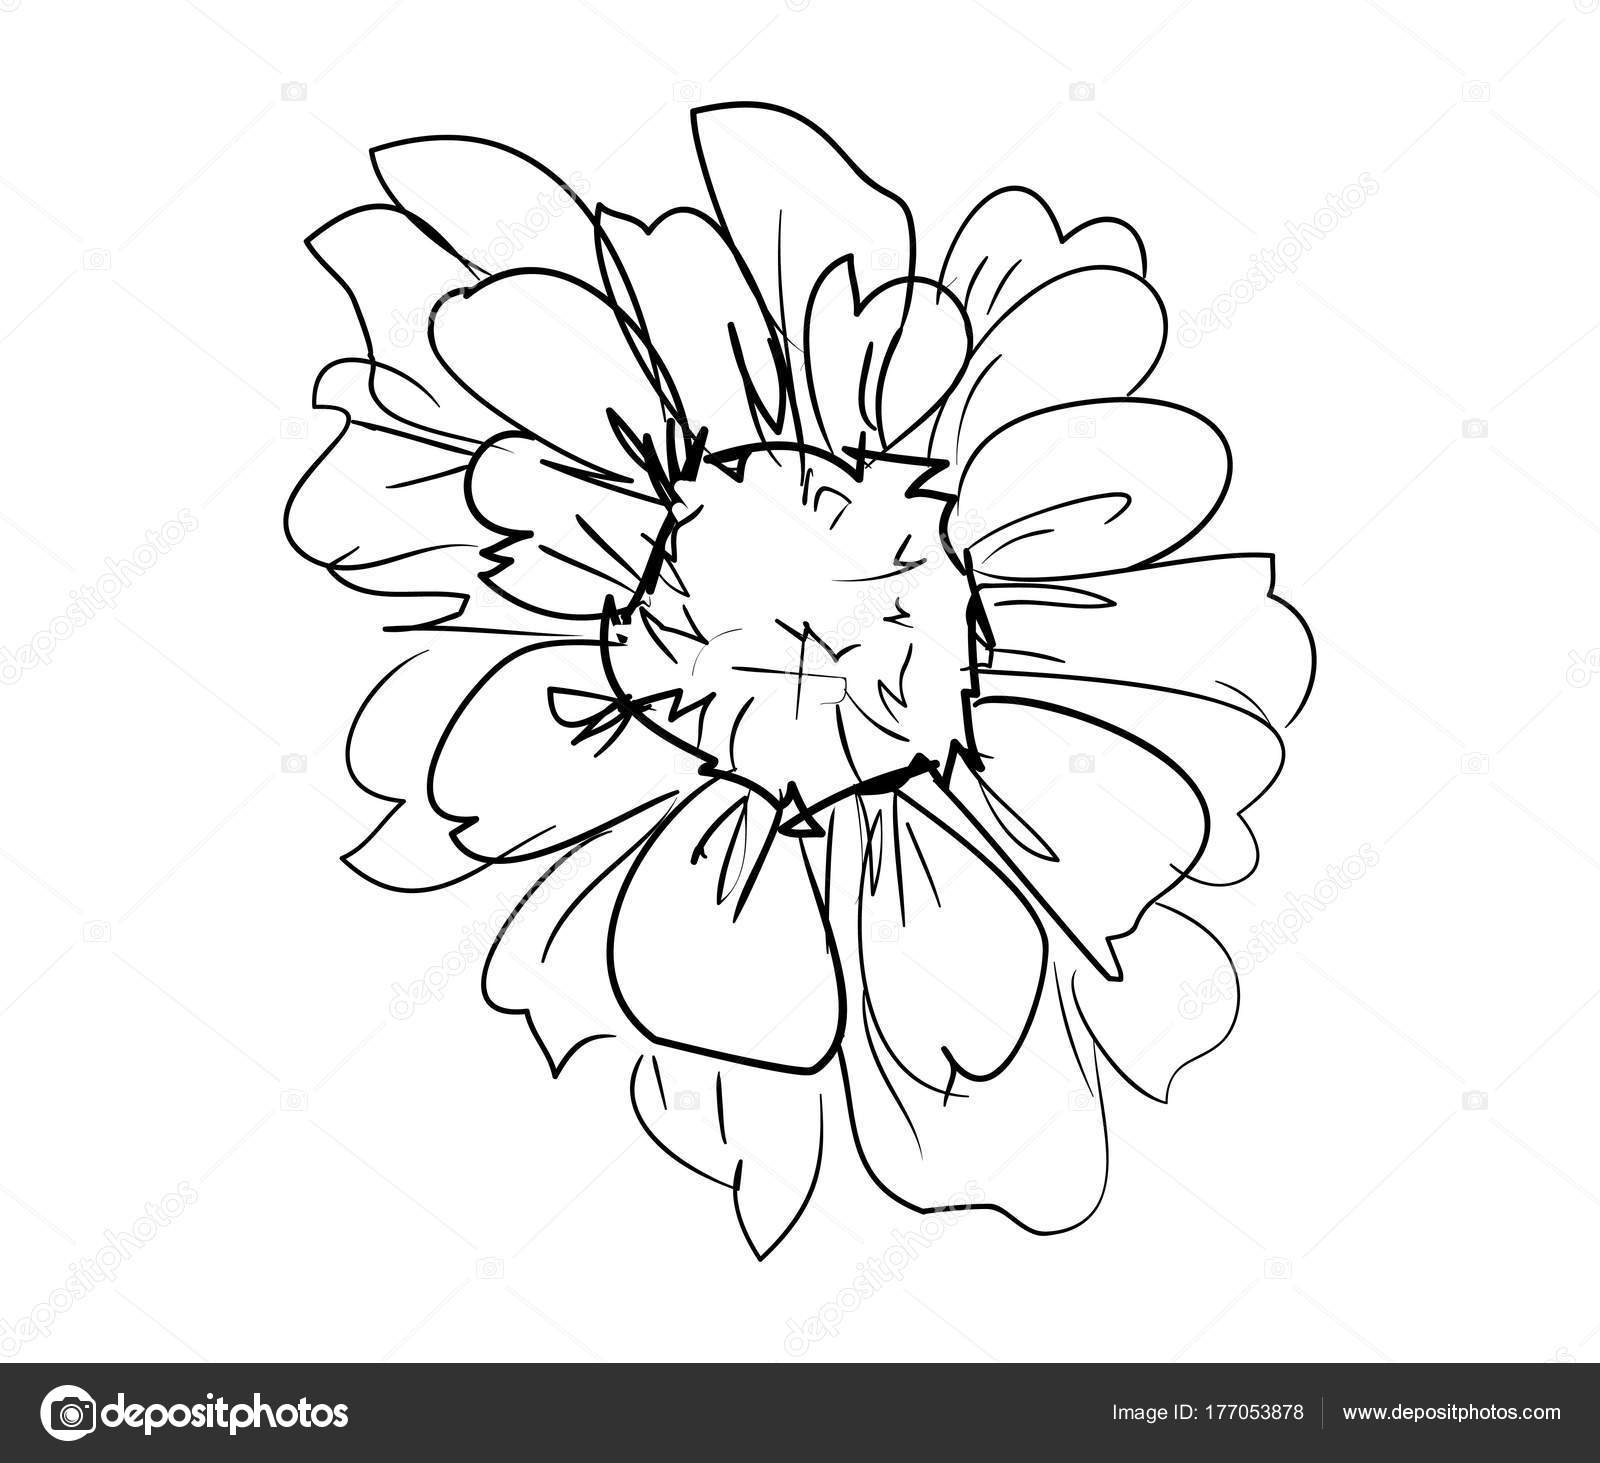 Hand drawn sketch beautiful flower vector illustration stock hand drawn sketch beautiful flower vector illustration stock vector izmirmasajfo